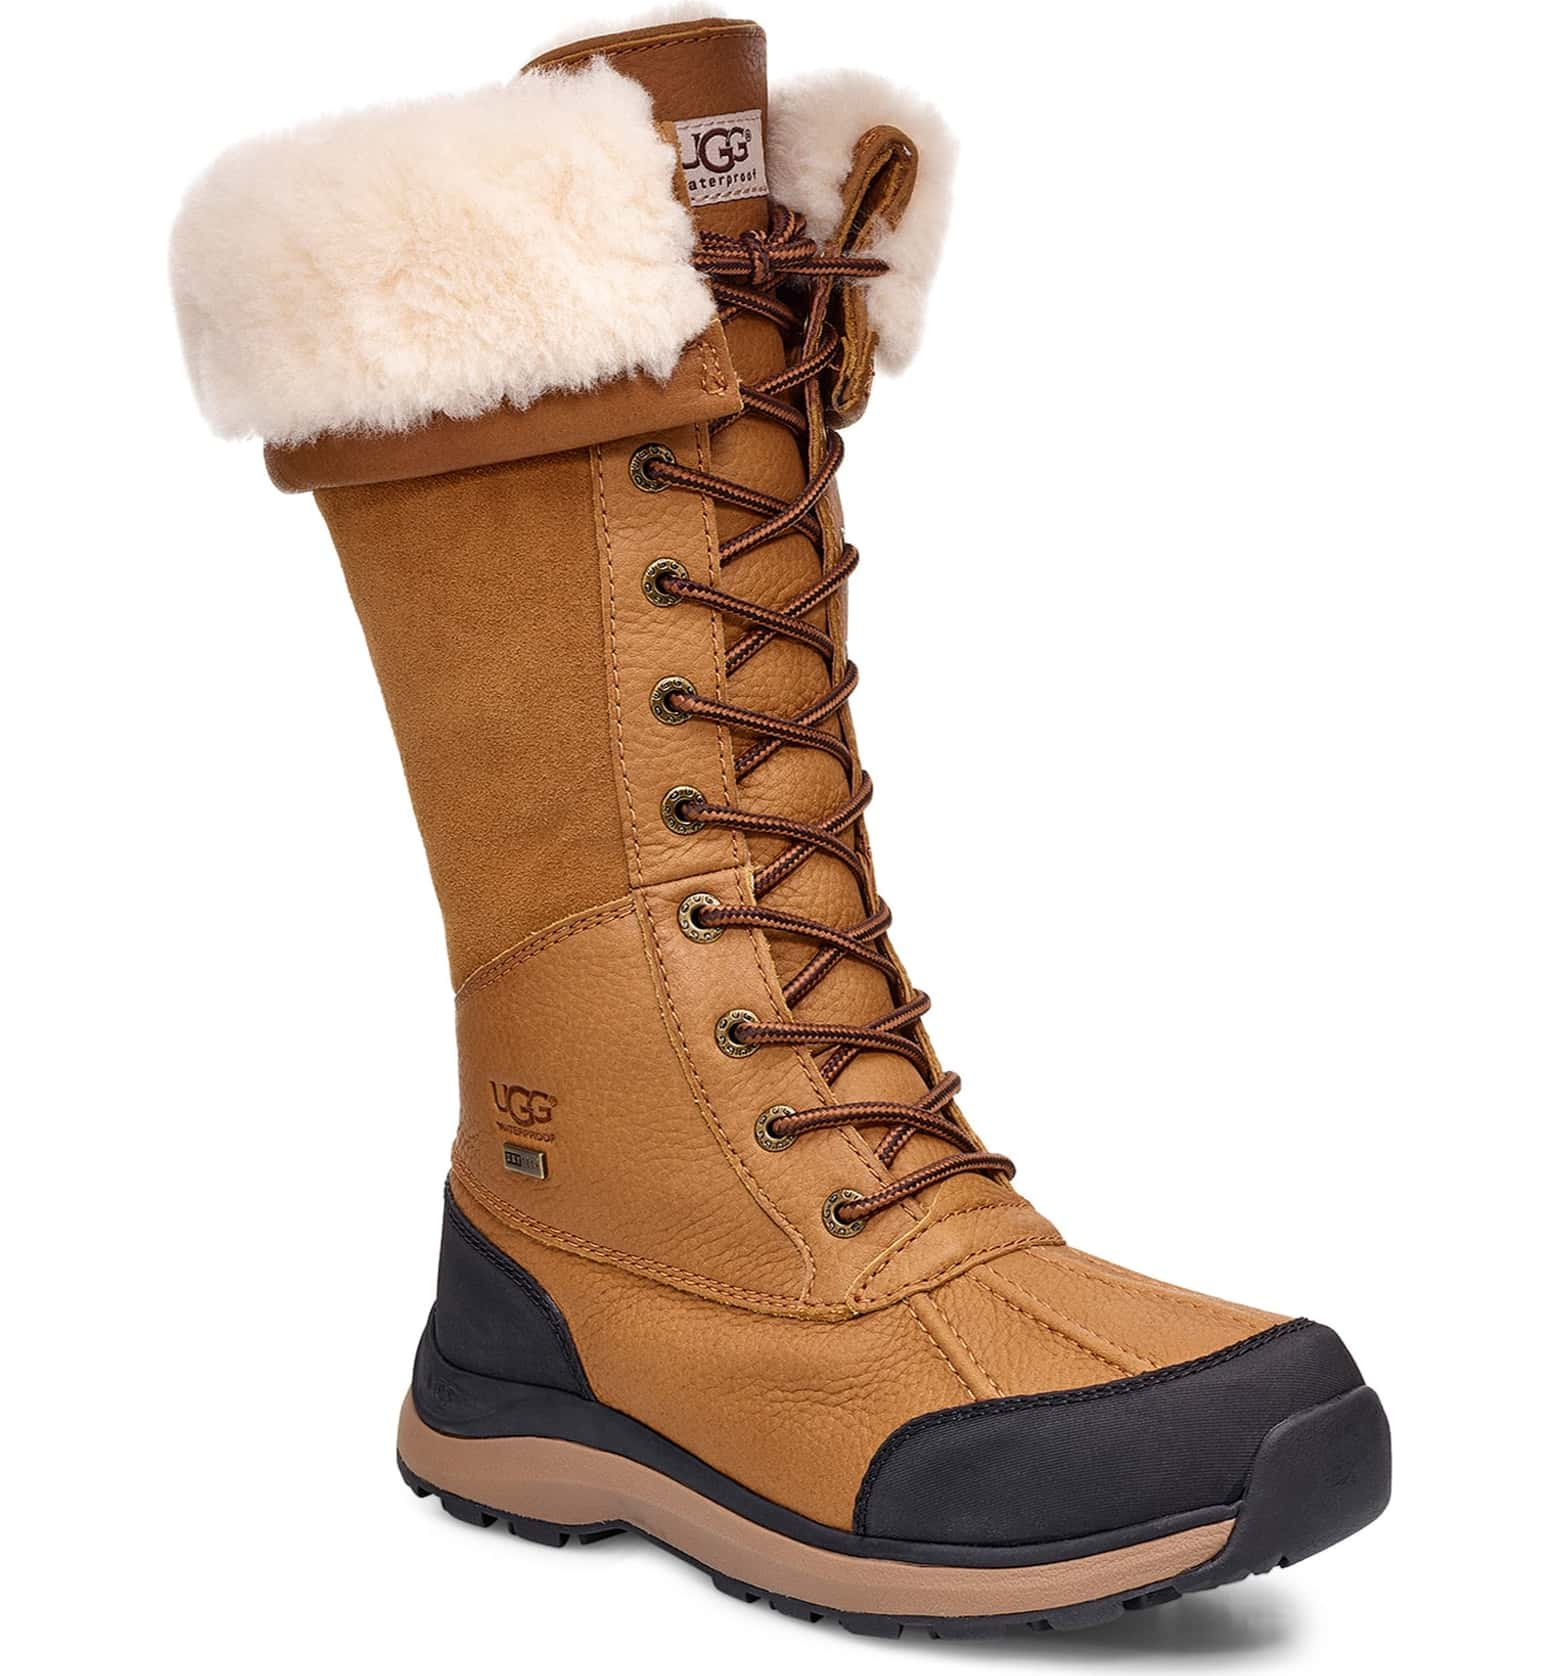 Snow Boots - Stay away from trends when it comes to snow boots, instead find a pair that will last you forever. Unless you live somewhere where it snows all of the time, you're probably only wearing them 1-2 months out of the year.